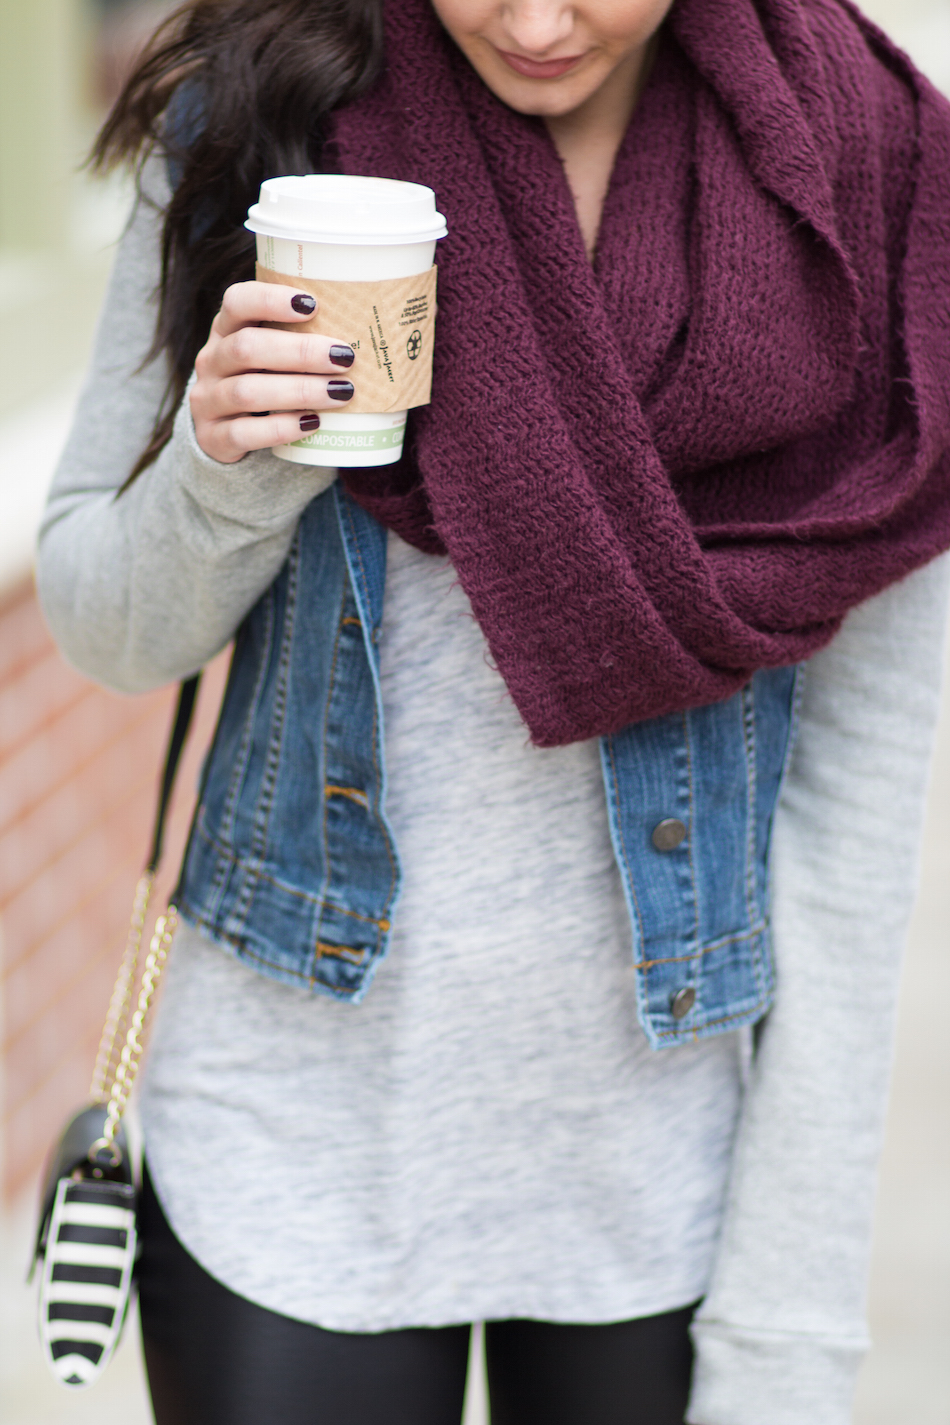 cozy layers + coffee